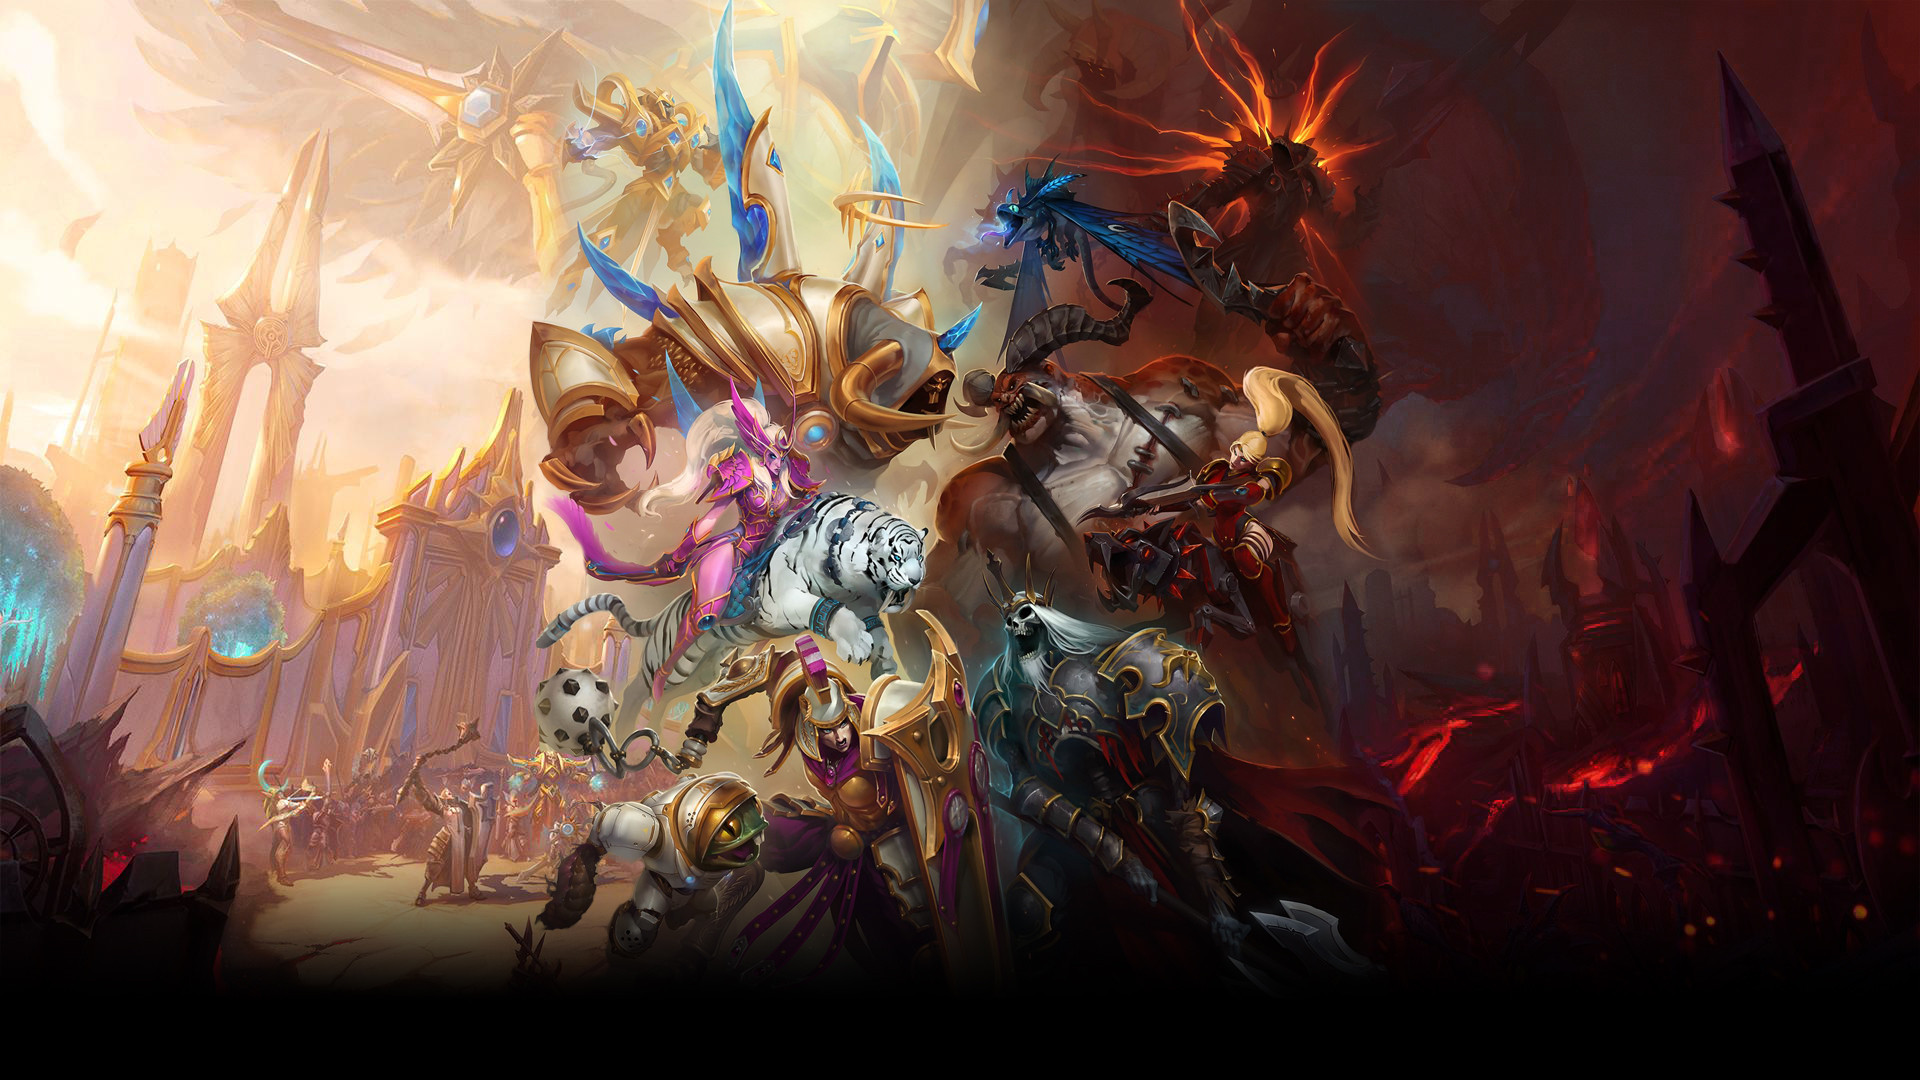 Badass america wallpaper 72 images - Heroes of the storm phone wallpaper ...